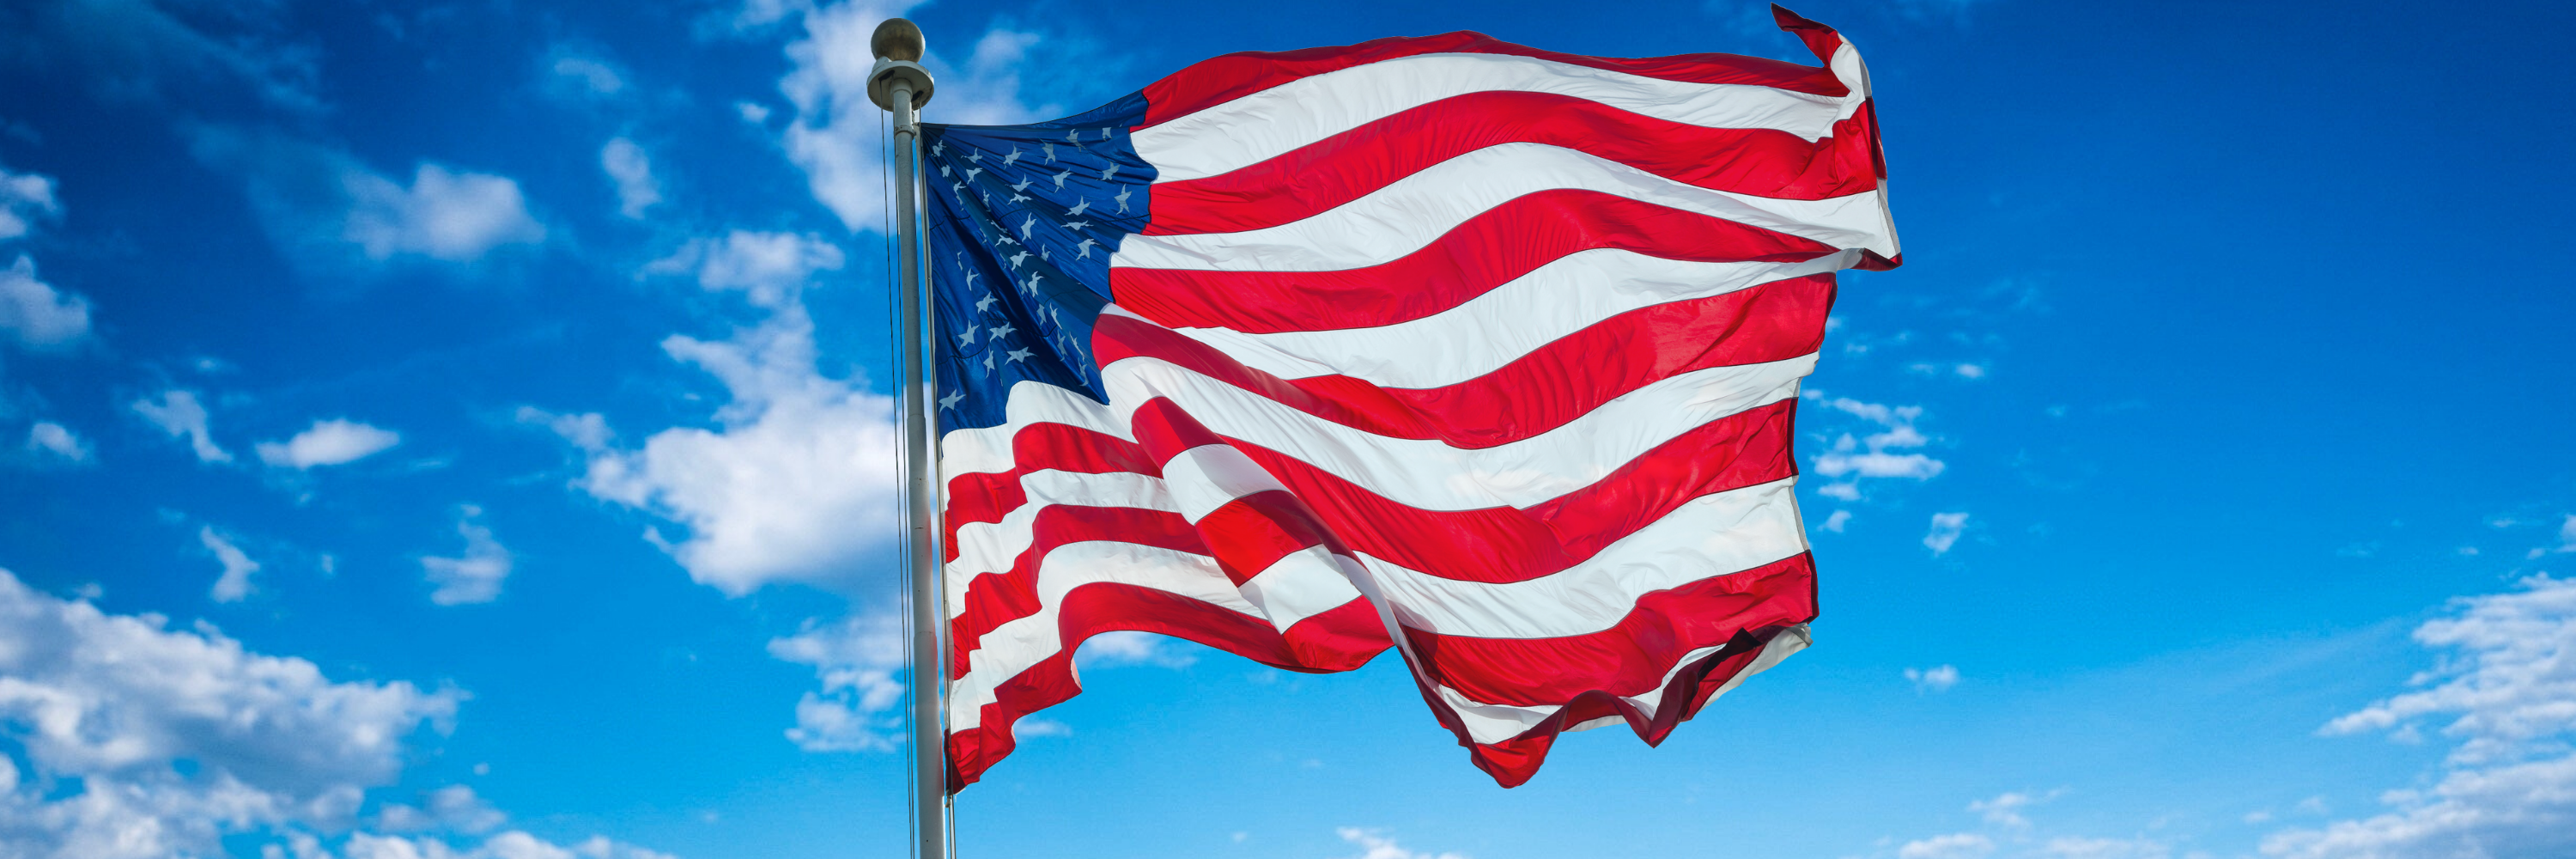 The Mystery of Windspeeds with LIBERTY FLAGS, The American Wave®